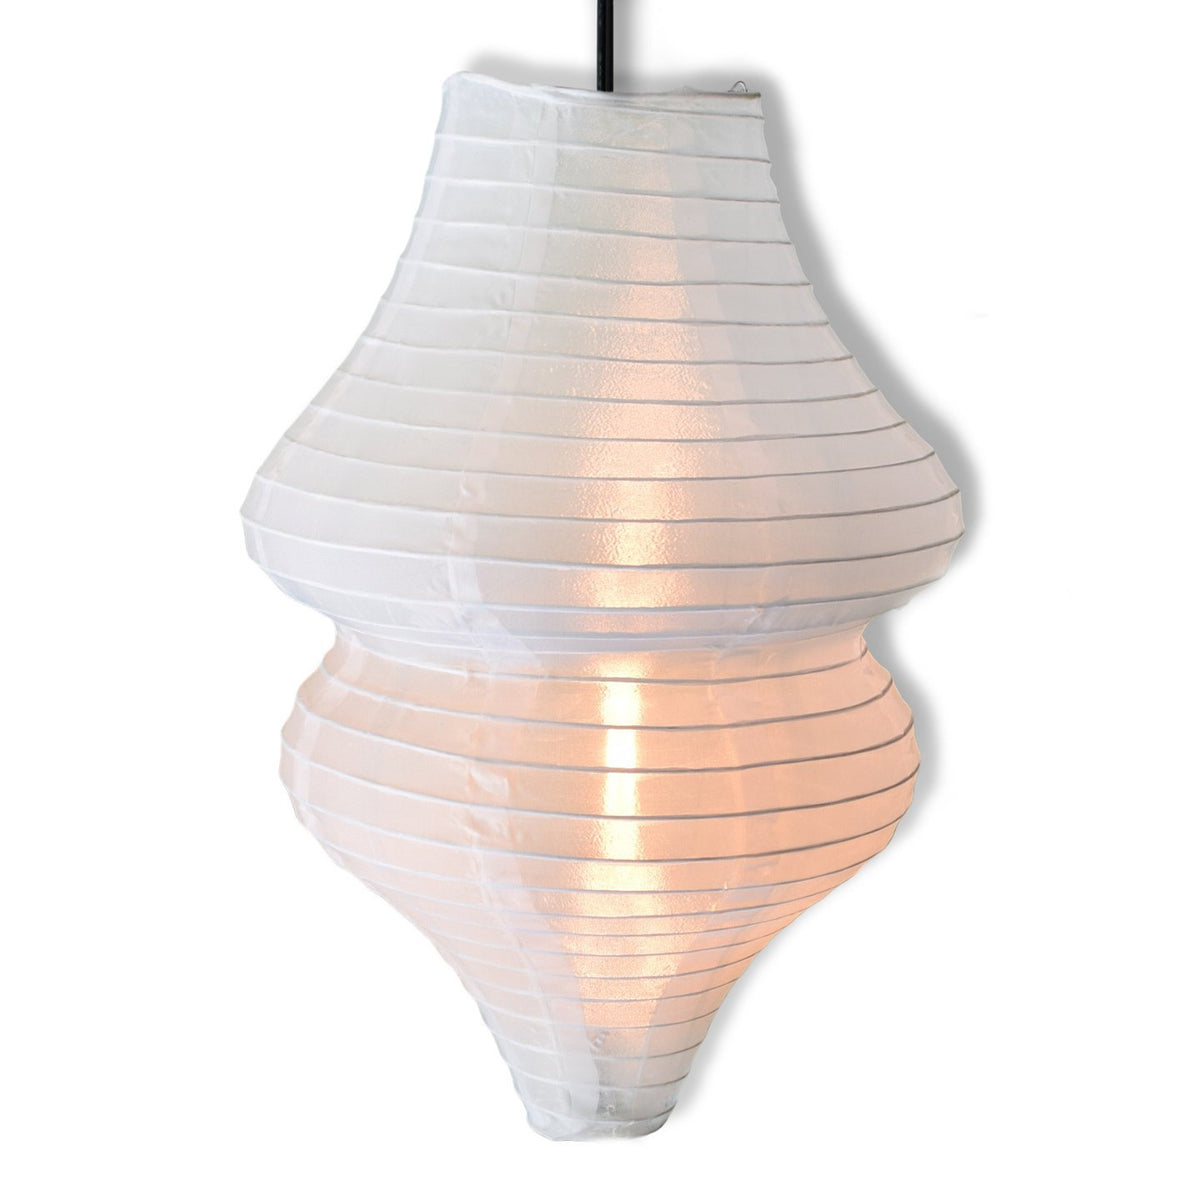 White Beehive Unique Shaped Nylon Lantern, 10-inch x 14-inch - Luna Bazaar | Boho & Vintage Style Decor